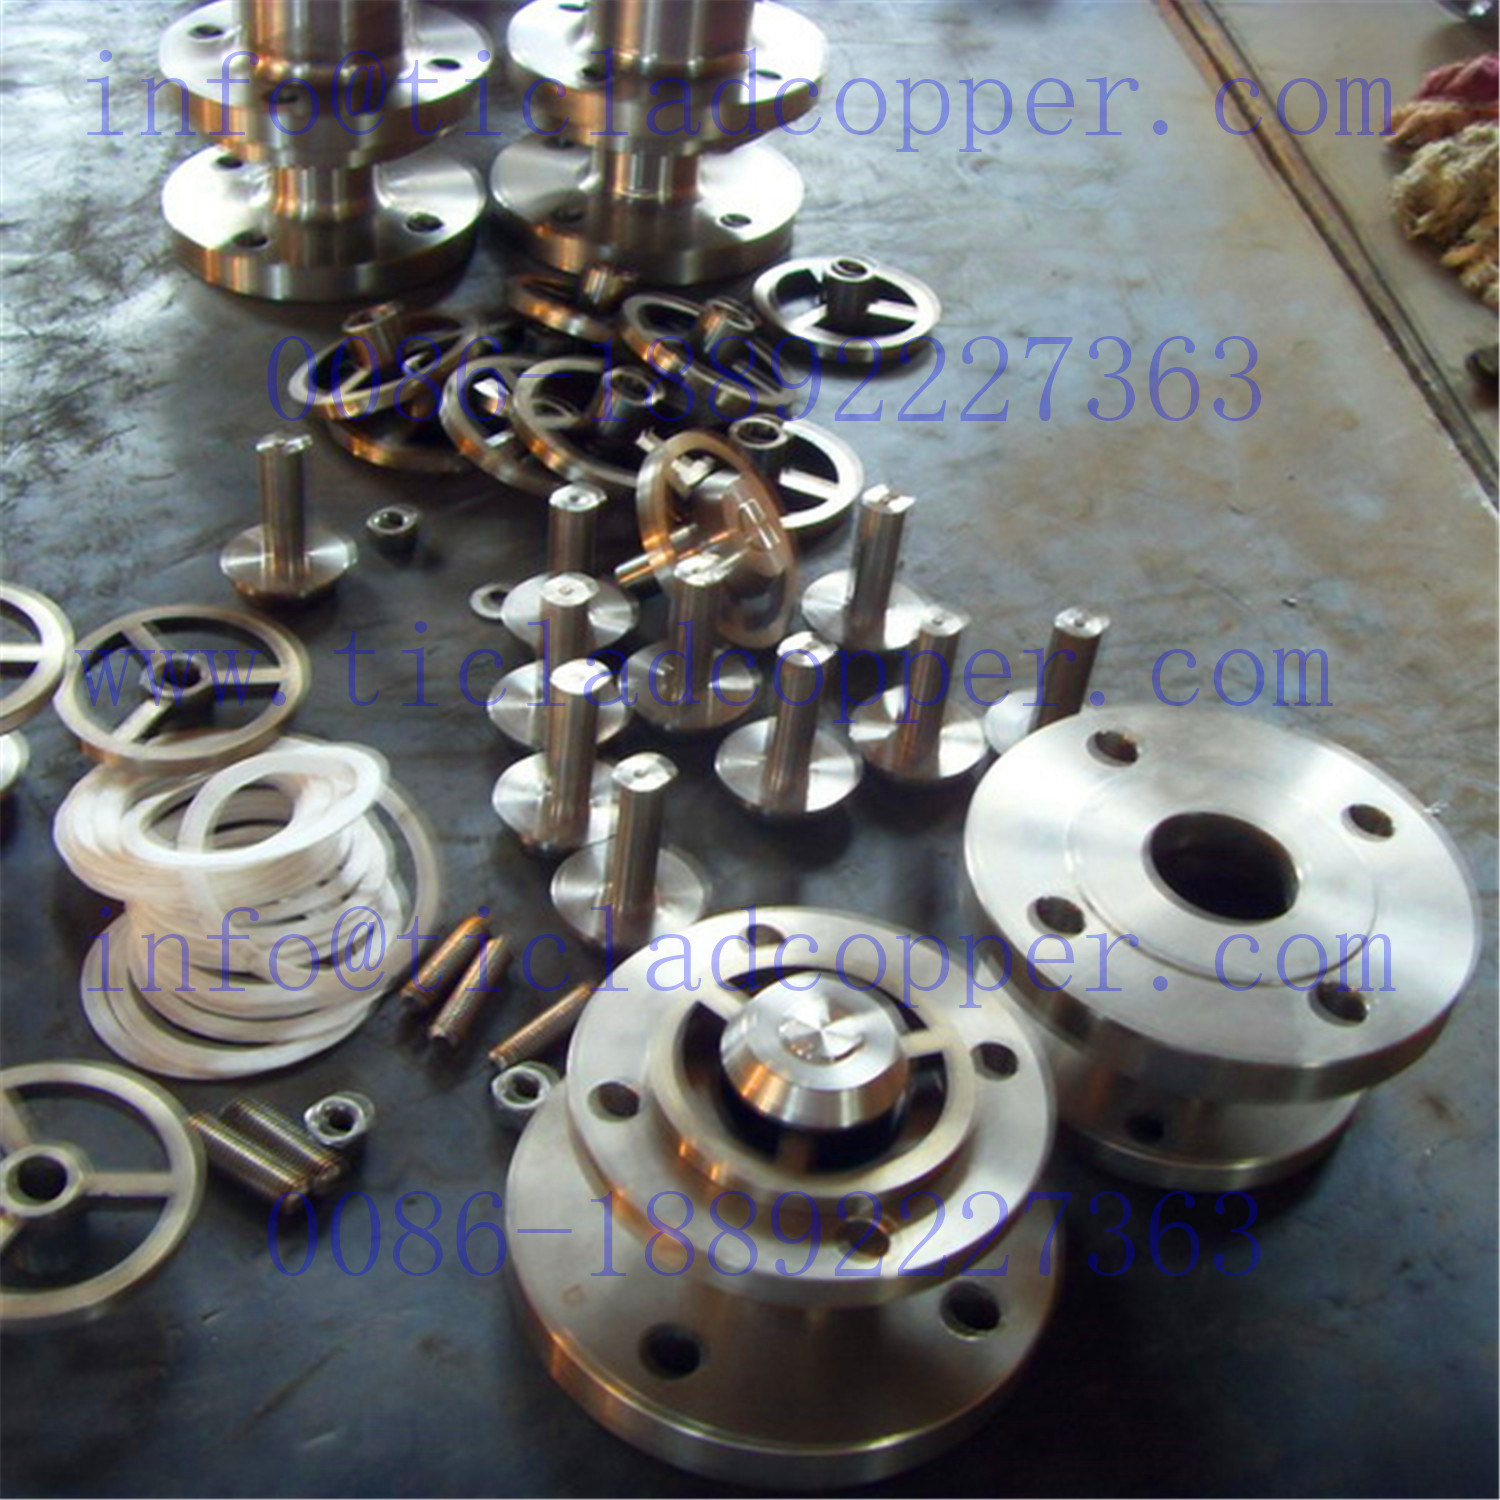 Titanium Valve / Stainless Steel Bottom Valve